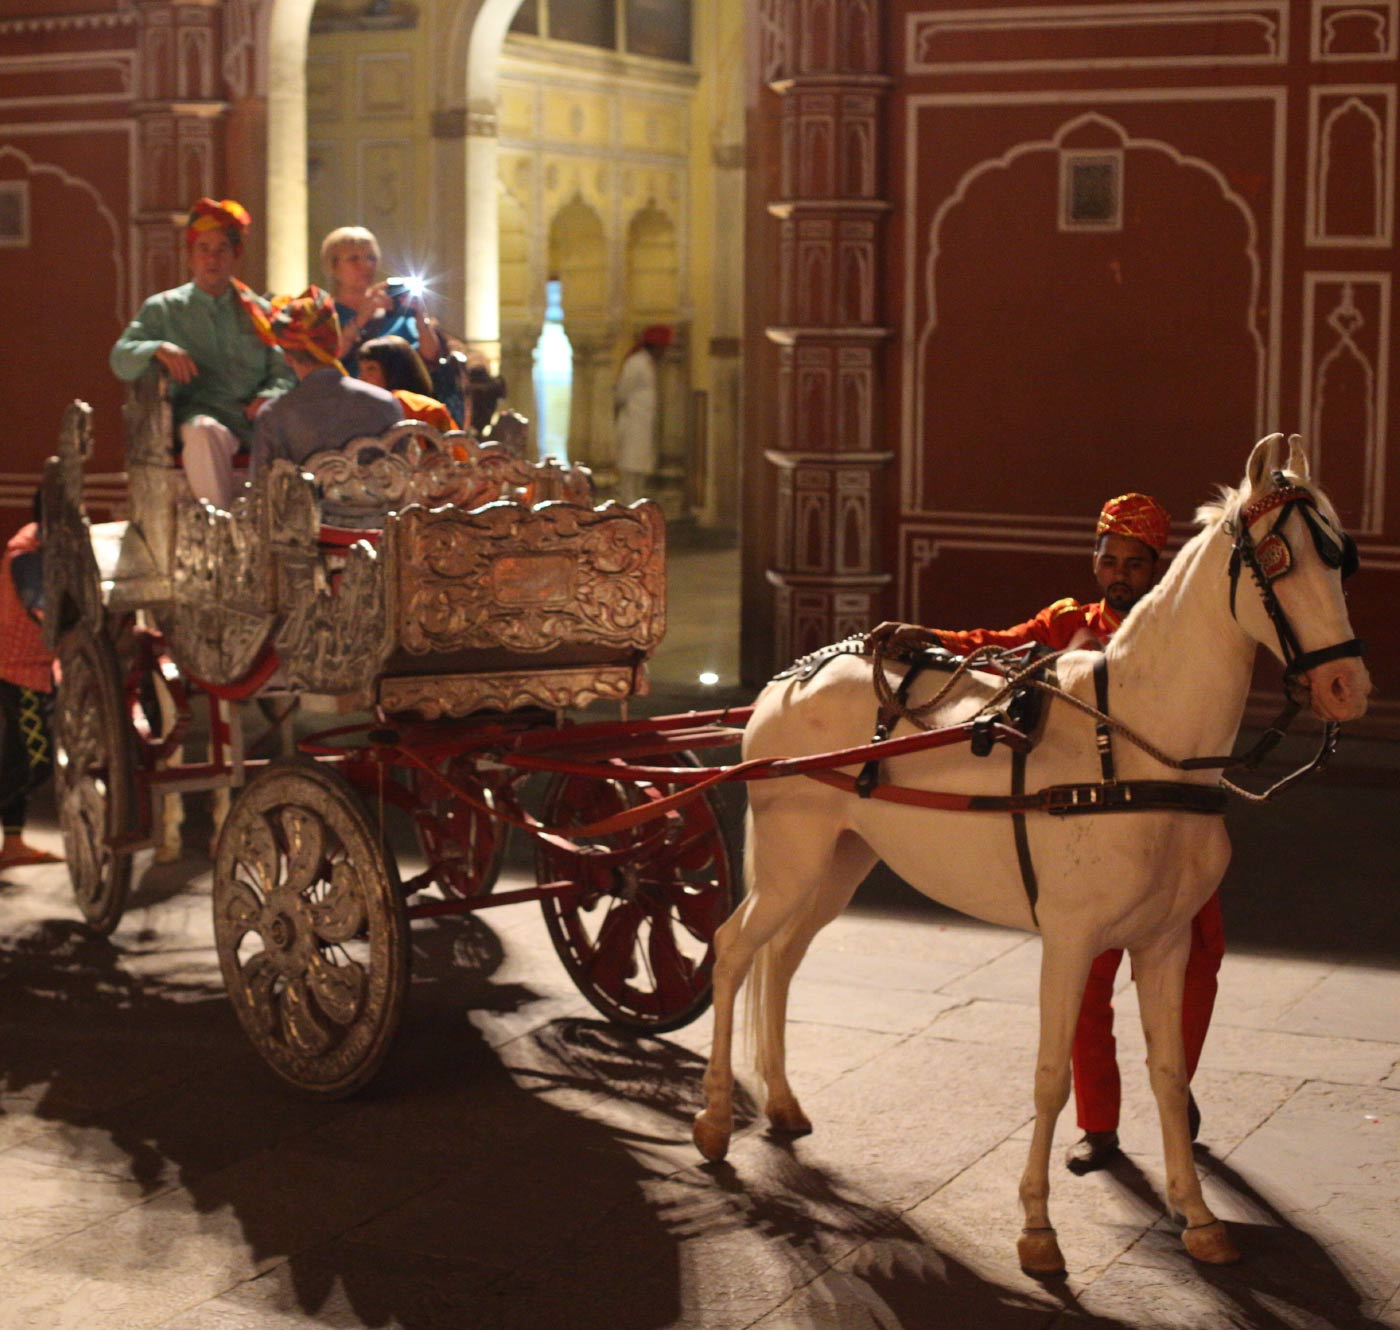 visiting India Royal Palace in Jaipur on a horse drawn carriage